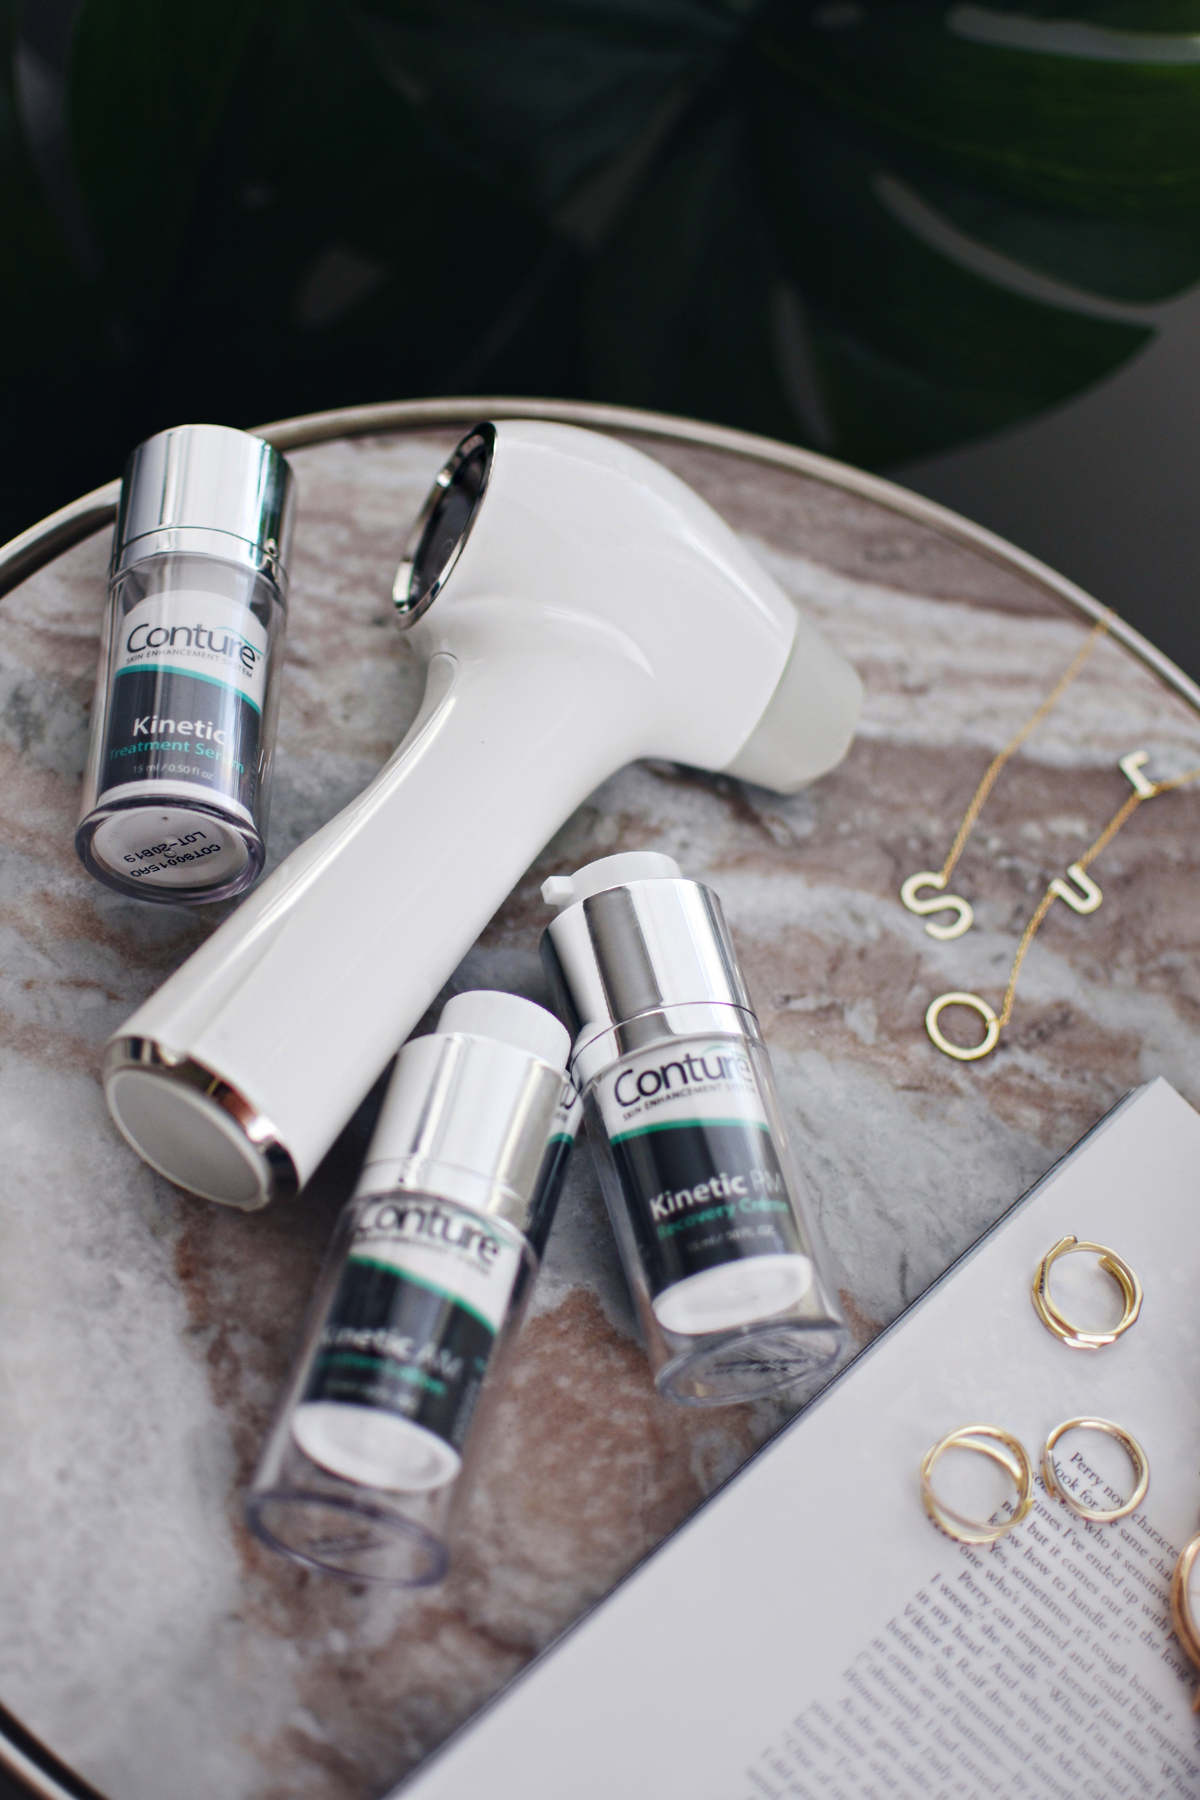 Conture Skin Toning System Beauty Review Chic Talk